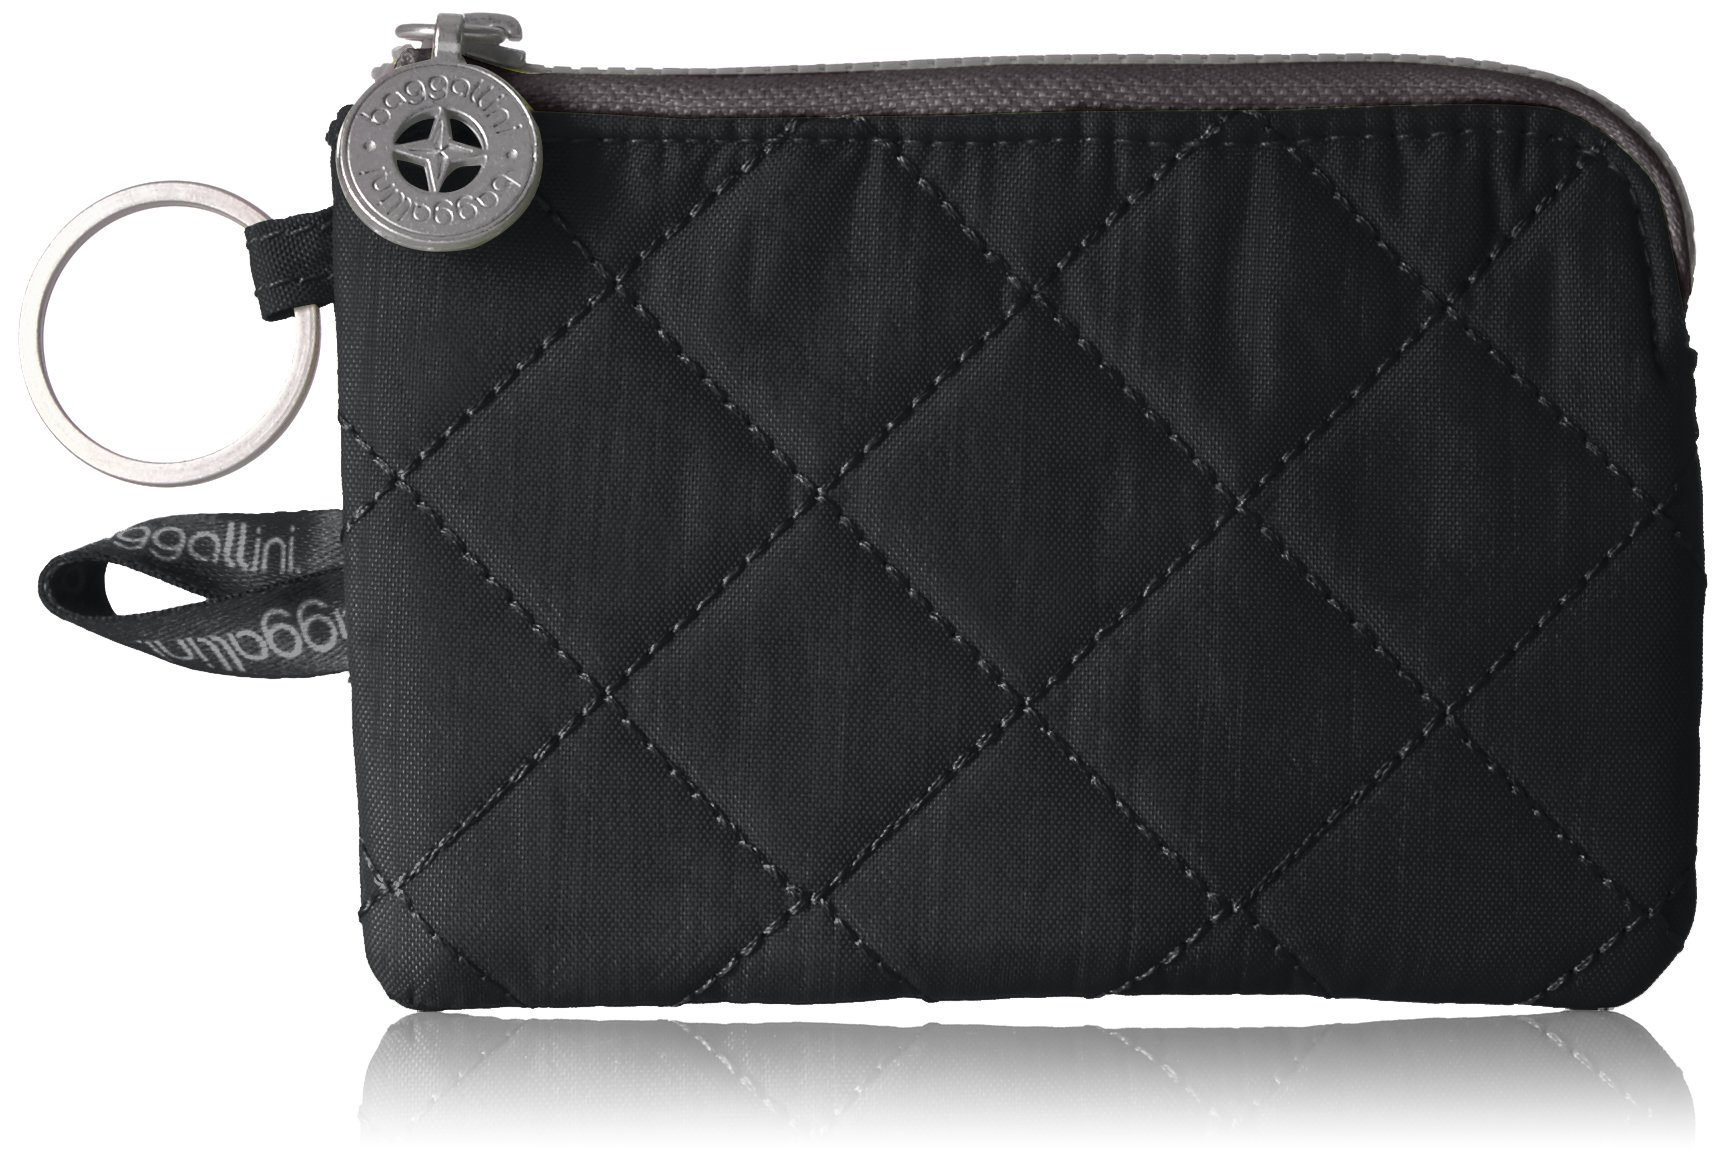 Baggallini Women's Rfid Card Case, Black/Charcoal, One Size